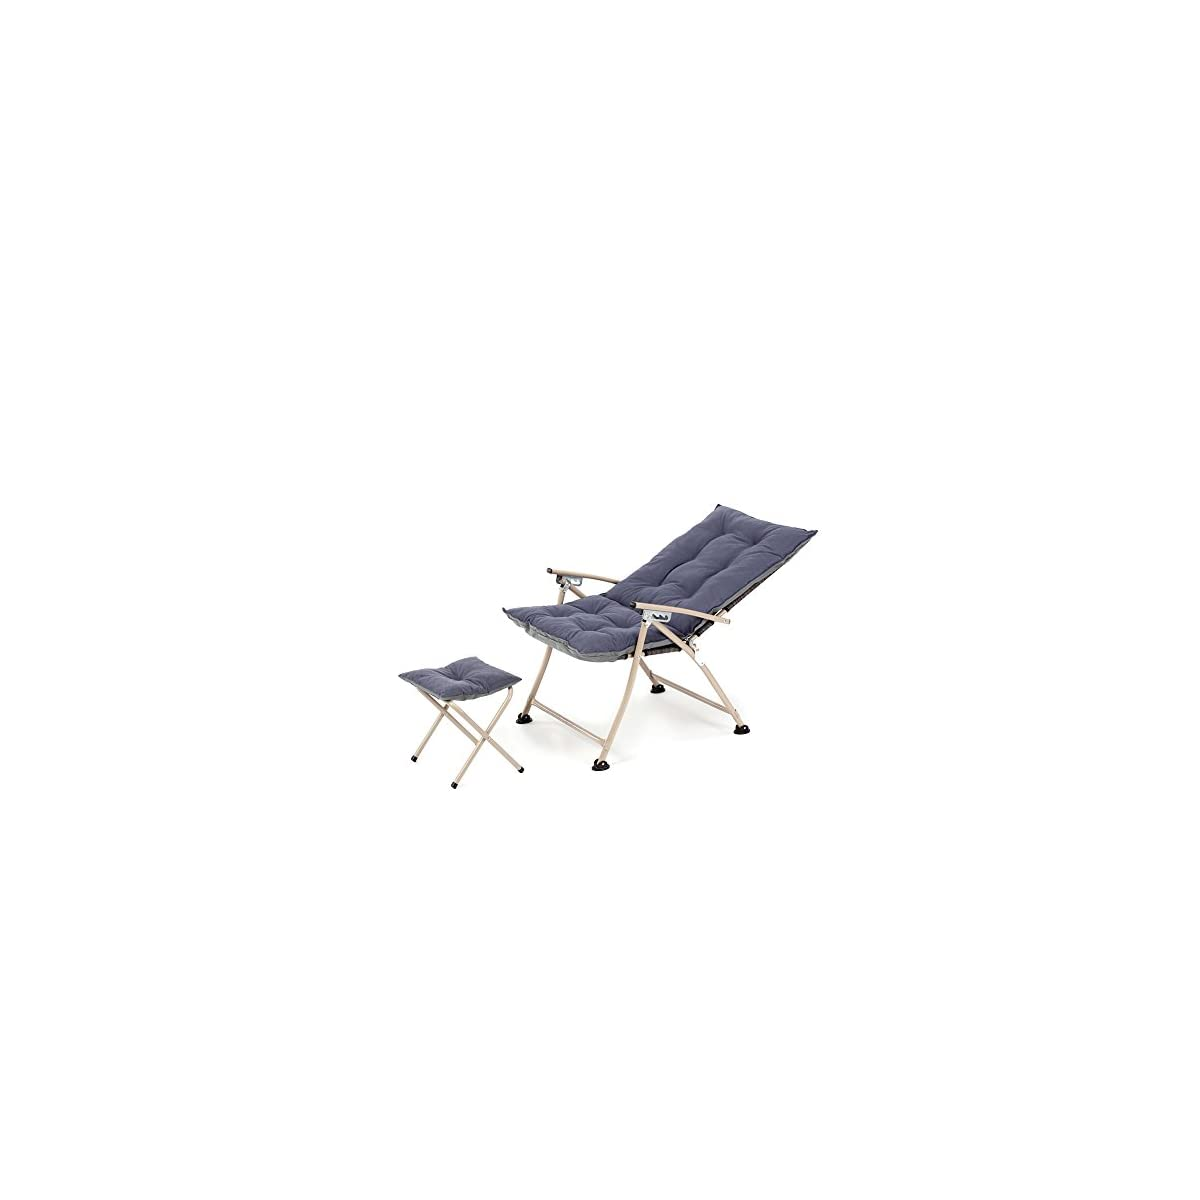 Admirable Campland Deluxe Padded Reclining Chair With Footrest Adjustable Camping Fishing Folding Cushion Relax Lazy Chair Creativecarmelina Interior Chair Design Creativecarmelinacom